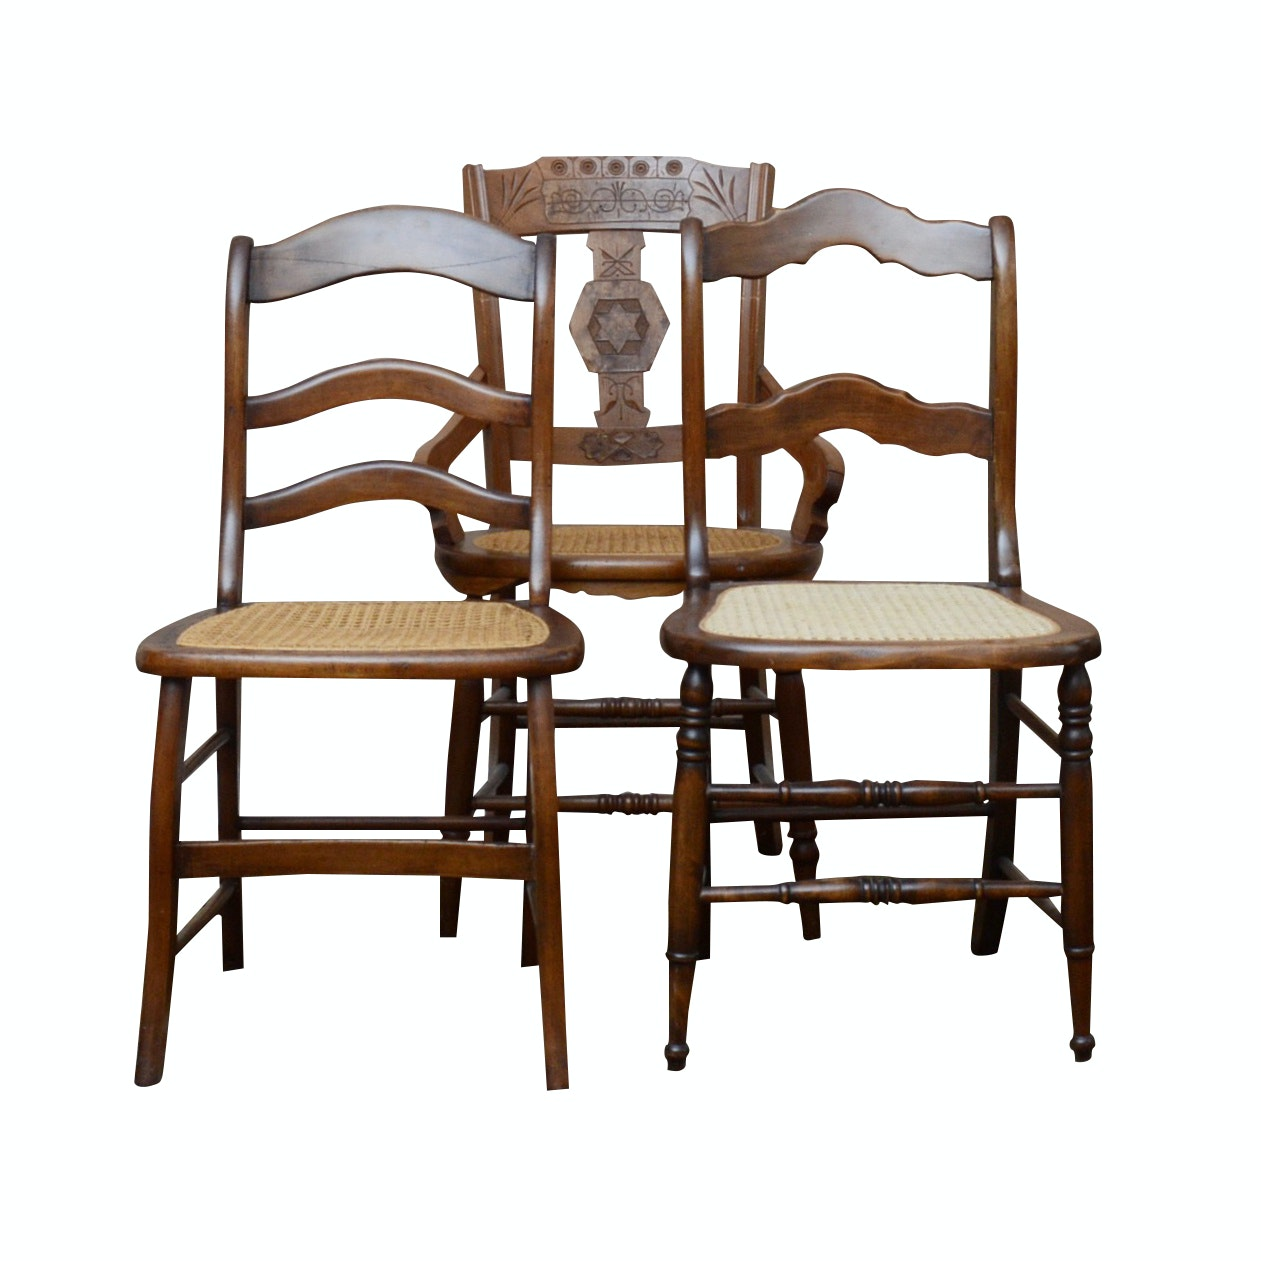 Three Wooden Side Chairs with Cane Seating